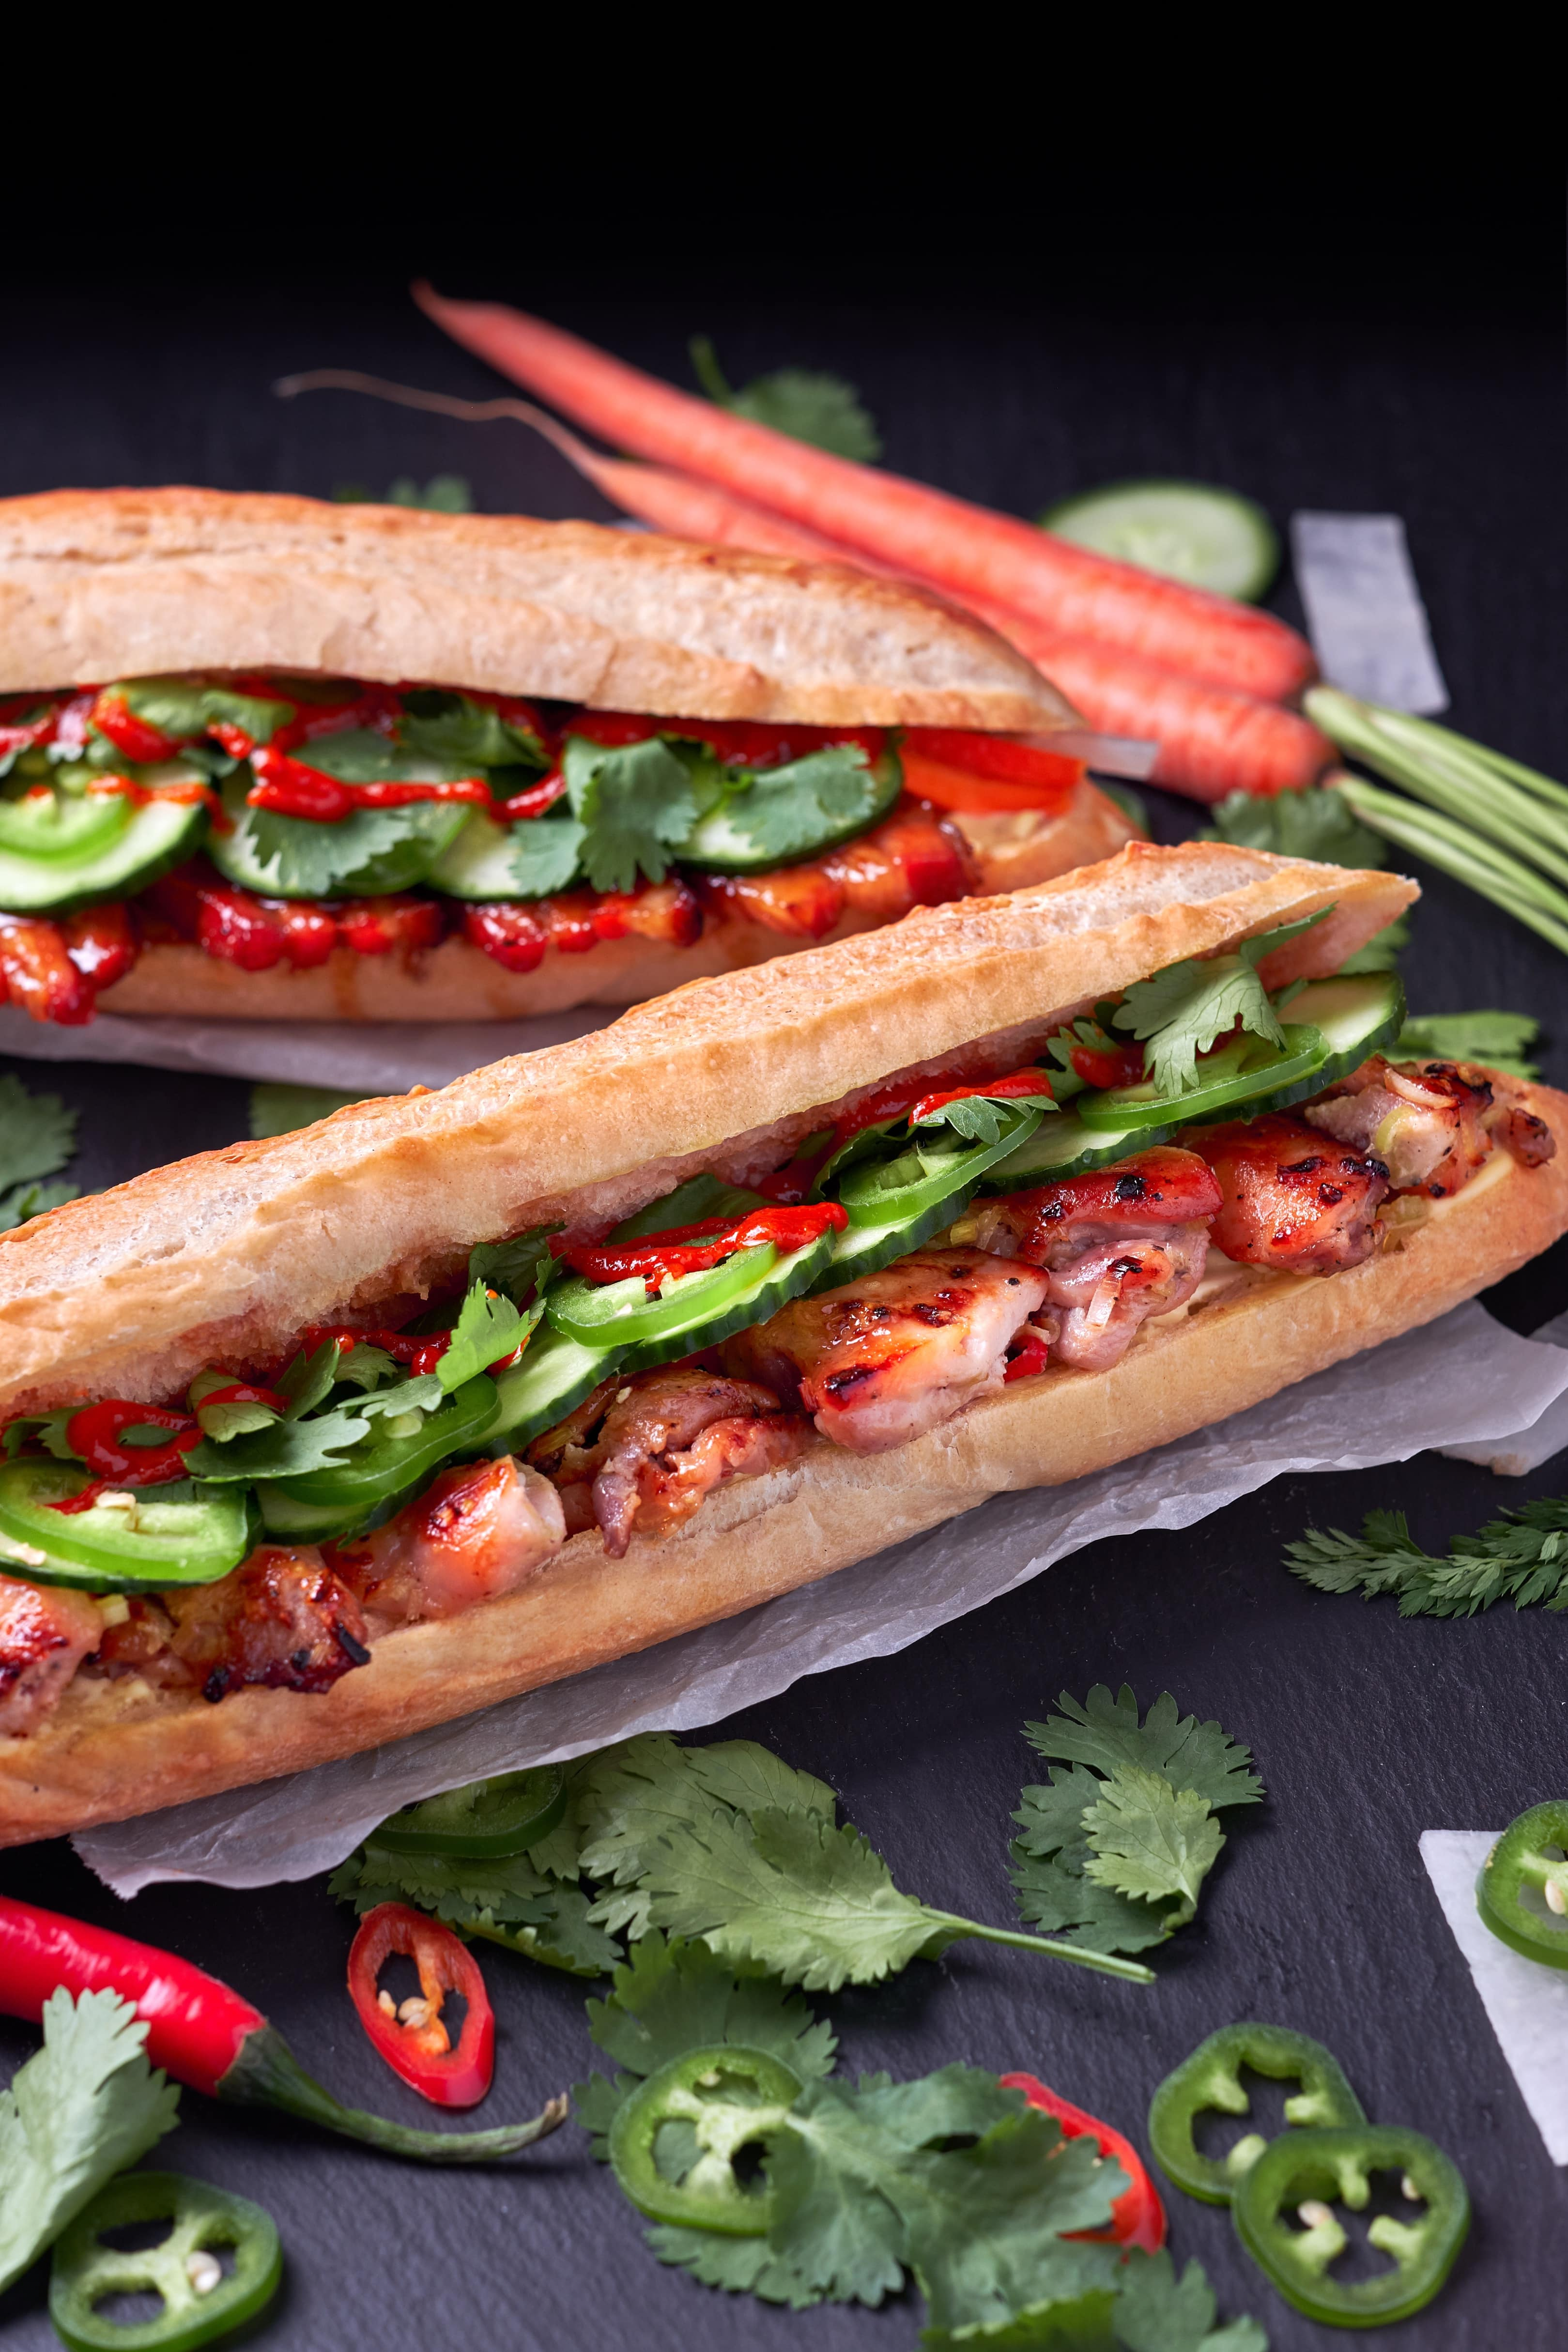 Lemongrass Chicken Bahn Mi